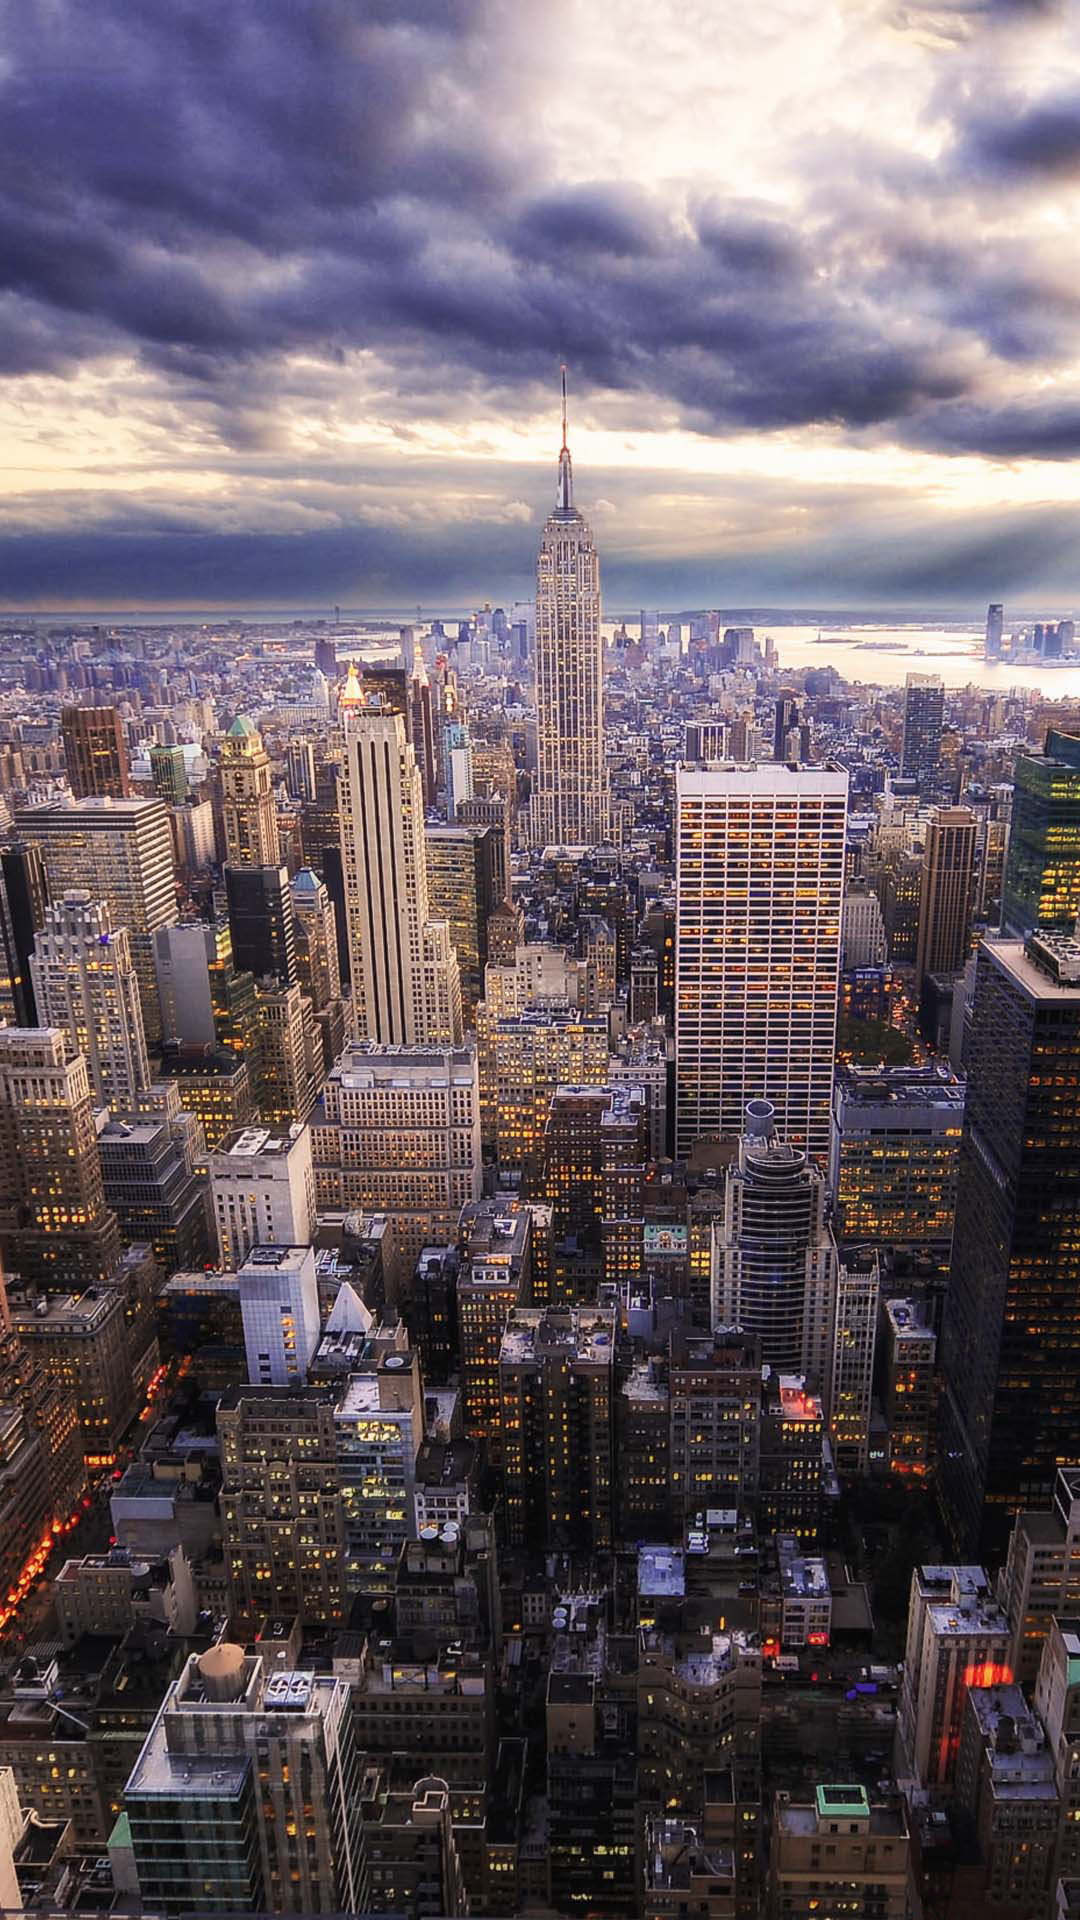 Civil Engineering Quotes Wallpapers New York City Skyline Wallpapers 183 ① Wallpapertag